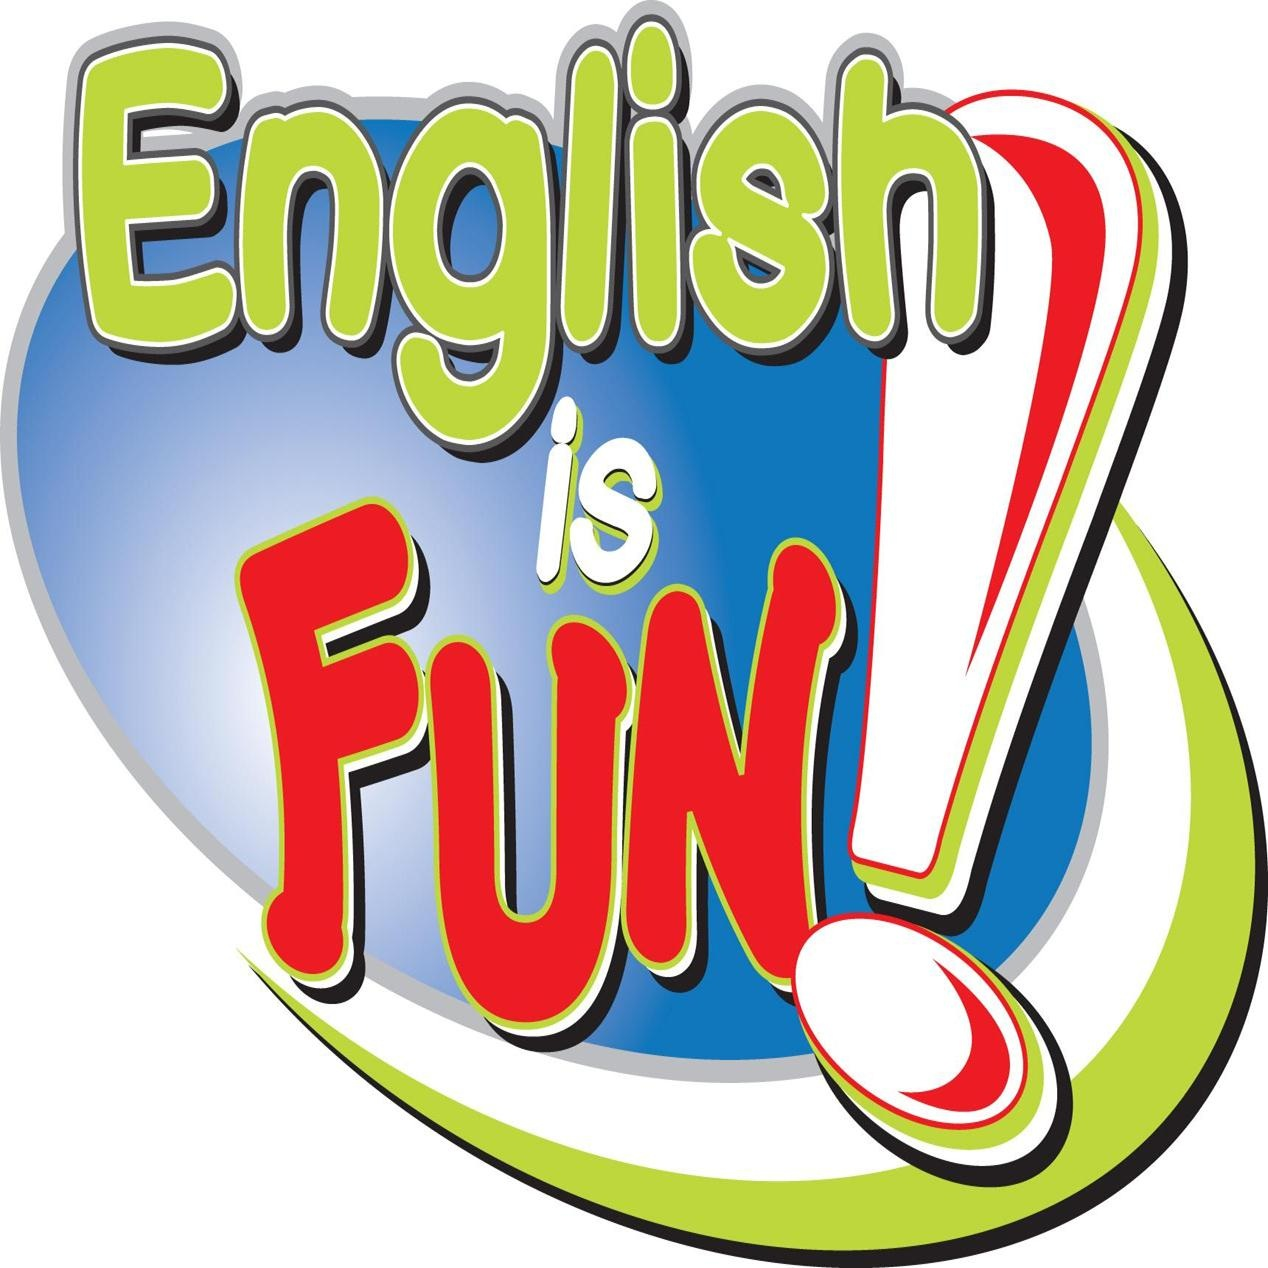 English is Fun!